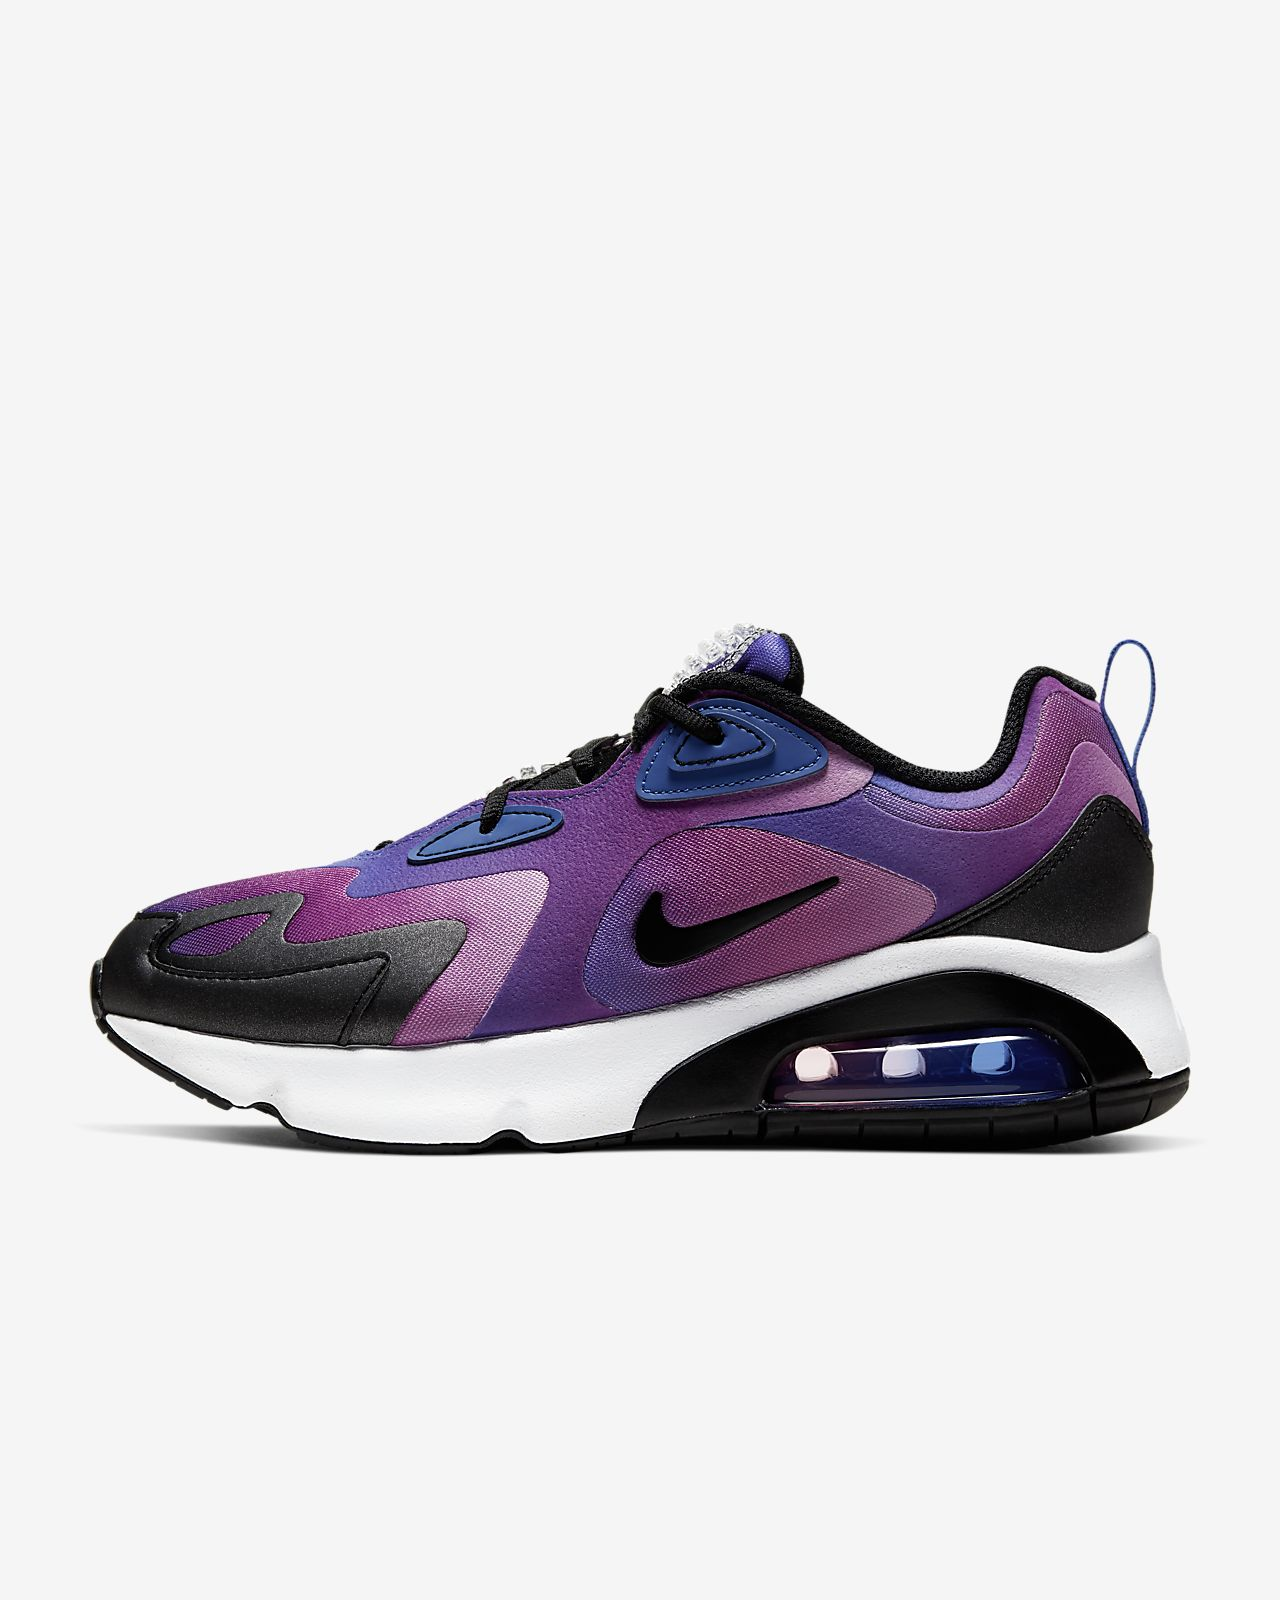 Nike Air Max 90 Se Women's Shoes for